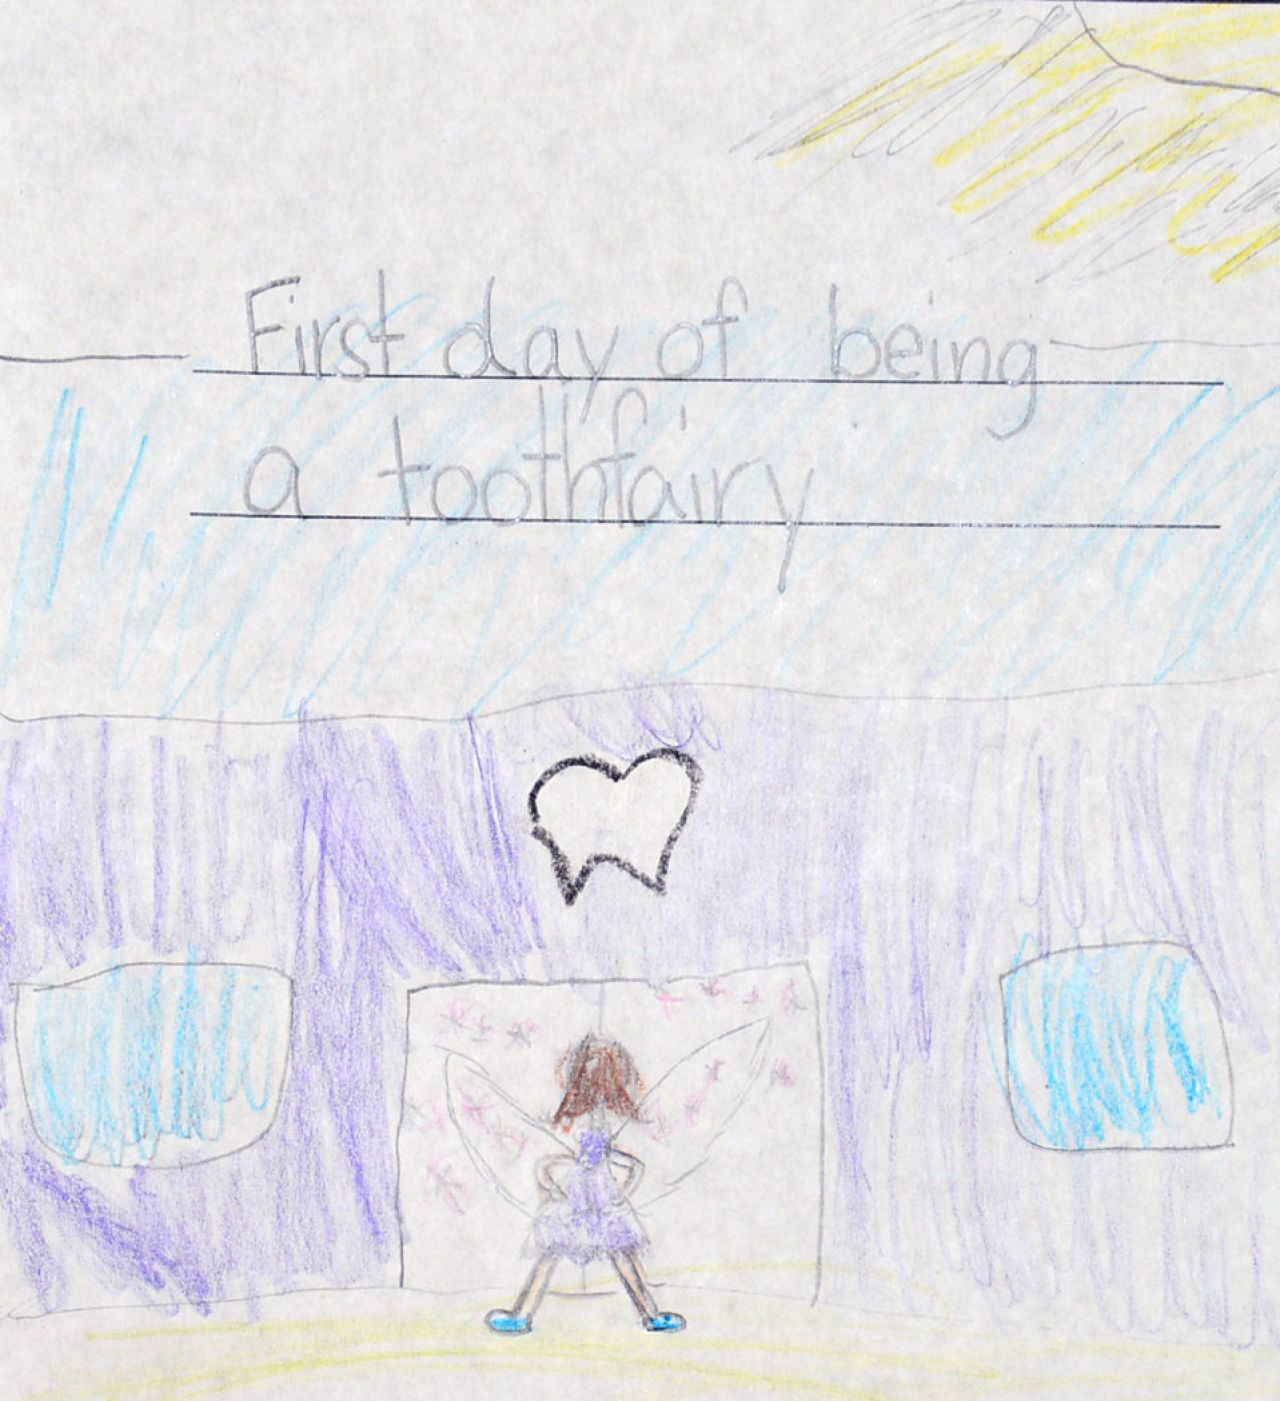 AETN PBS KIDS Writers Contest 2nd Grade 3rd First Day of Being a Tooth Fairy